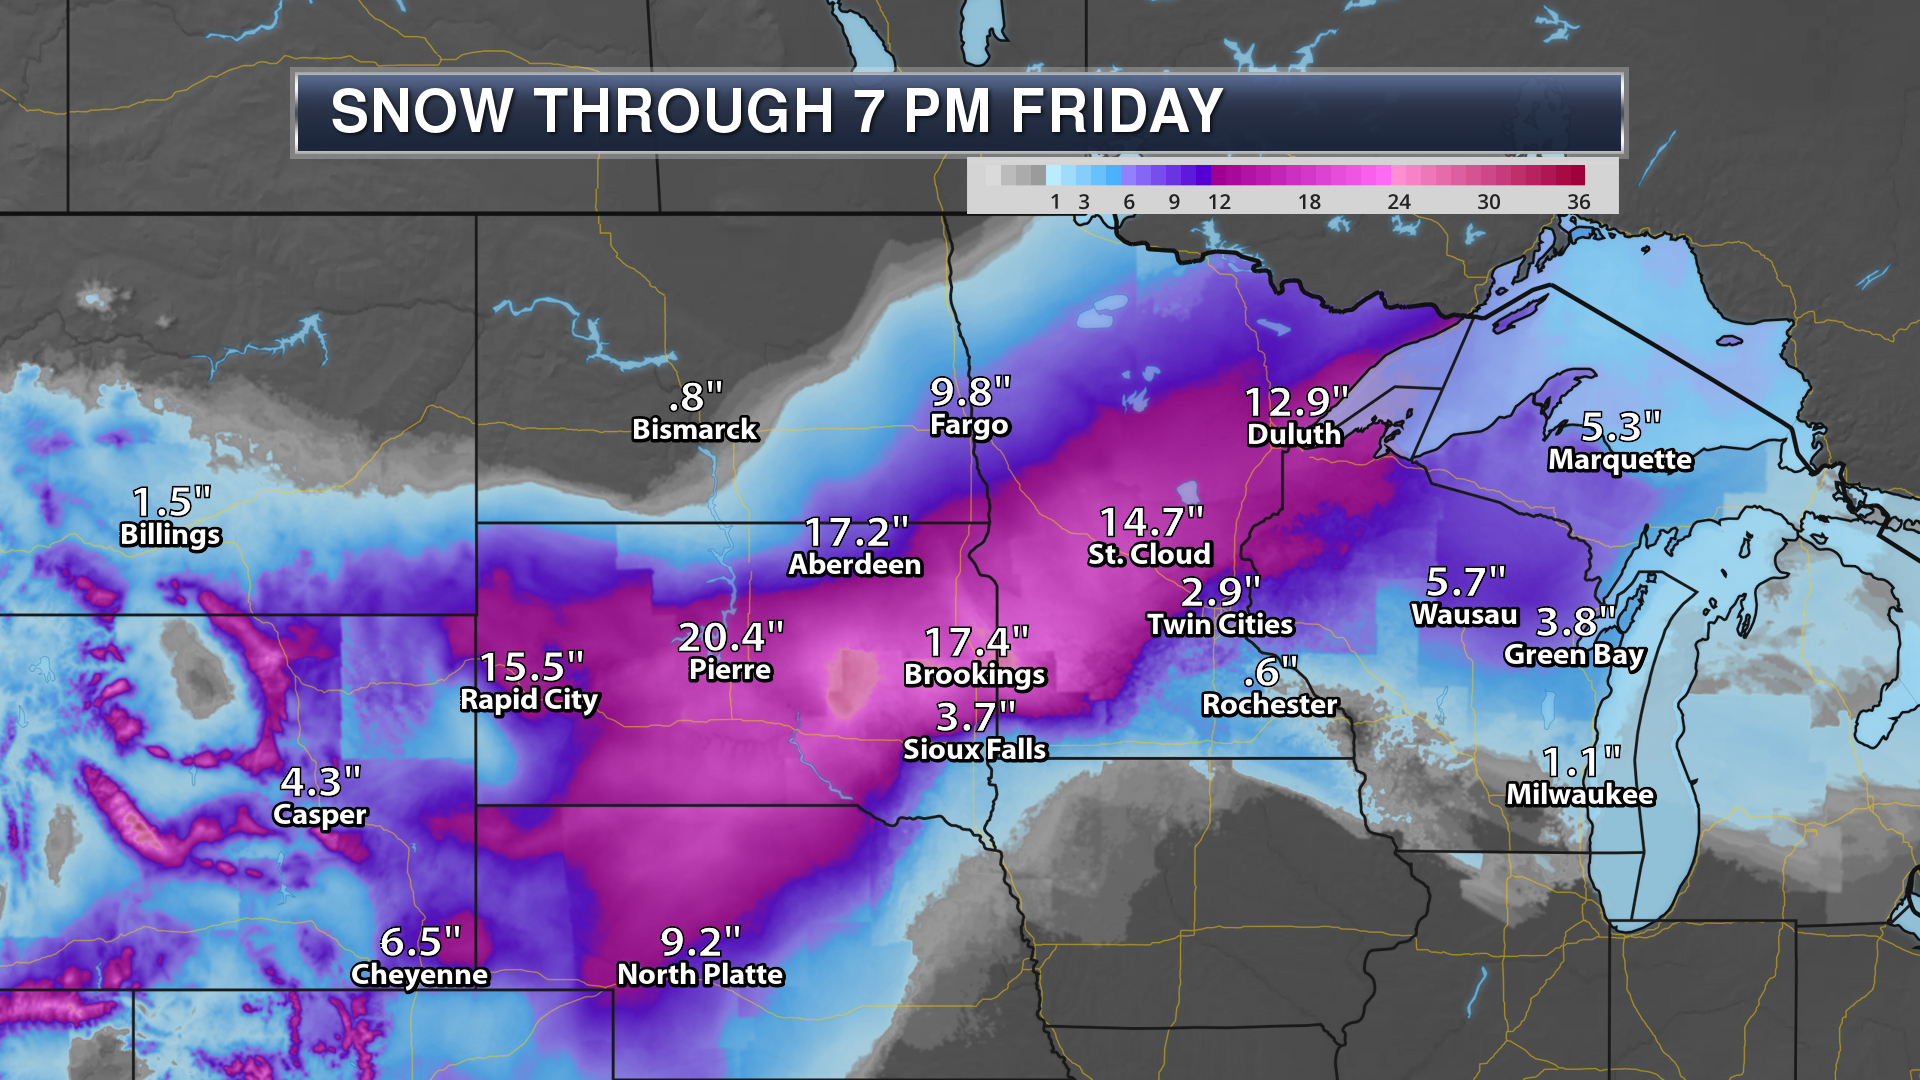 winter weather graphics 3 day snow forecast graphic from April 2019 blizzard in northern plains and Midwest